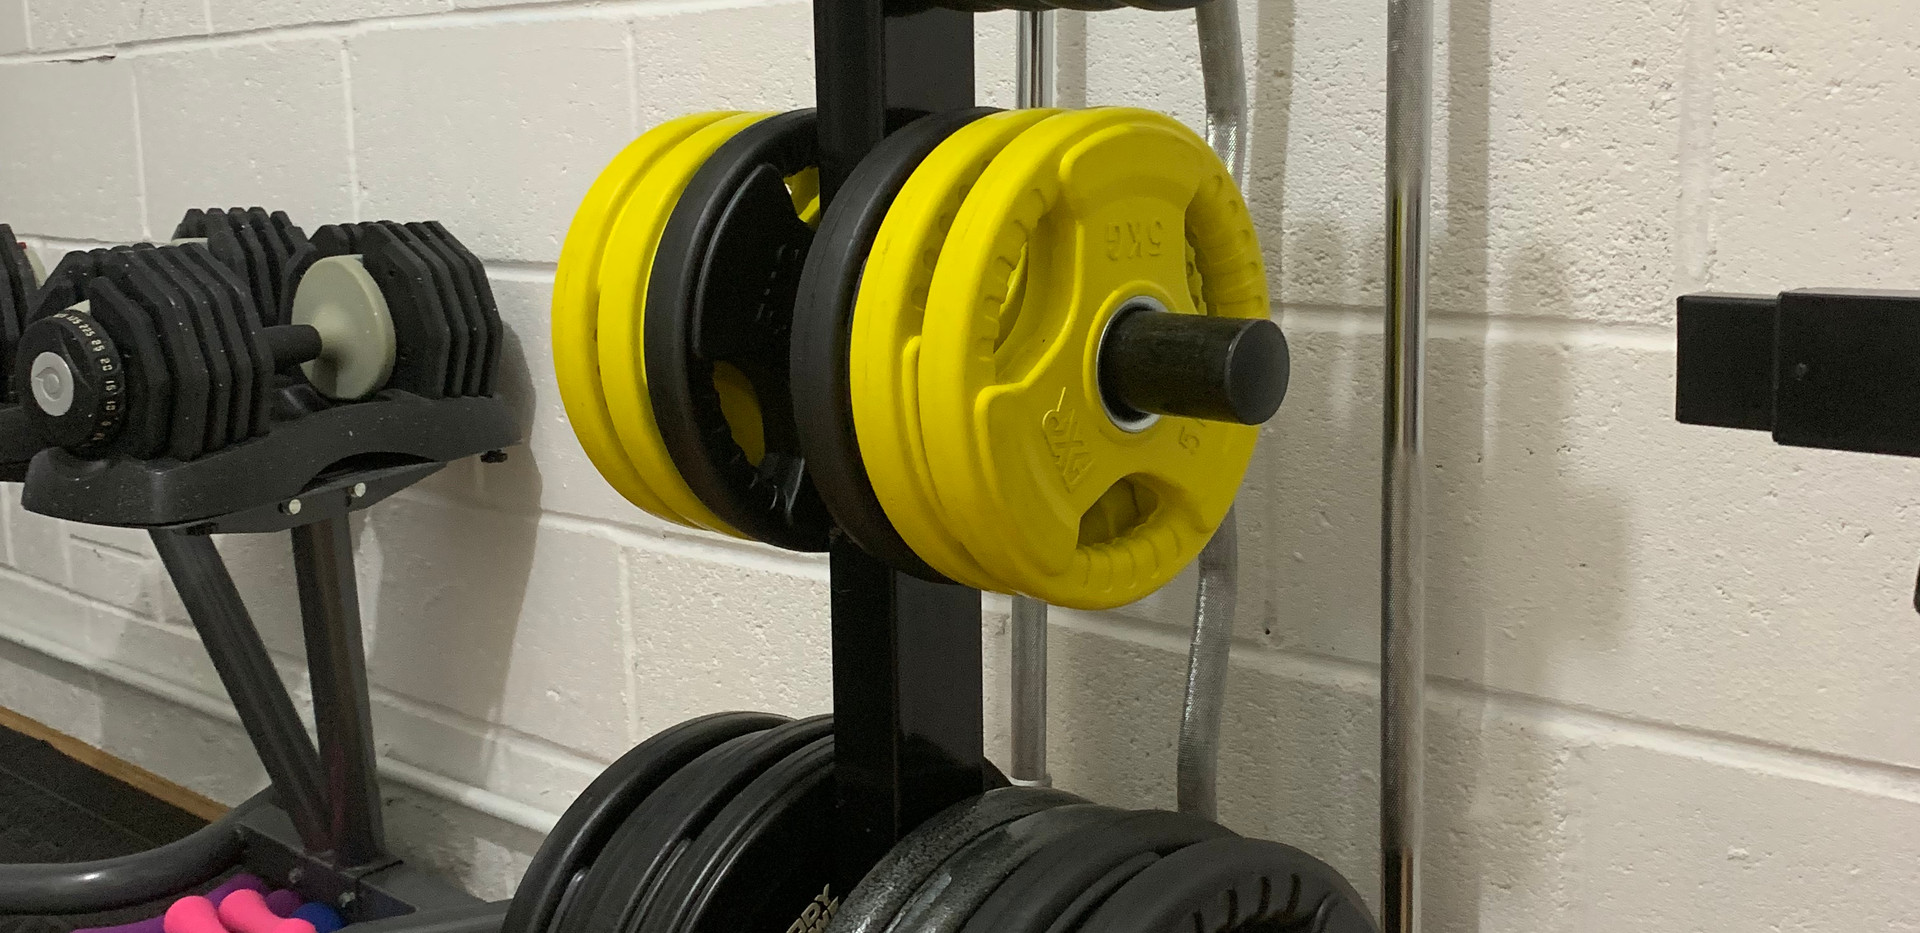 Wide Selection of Weights